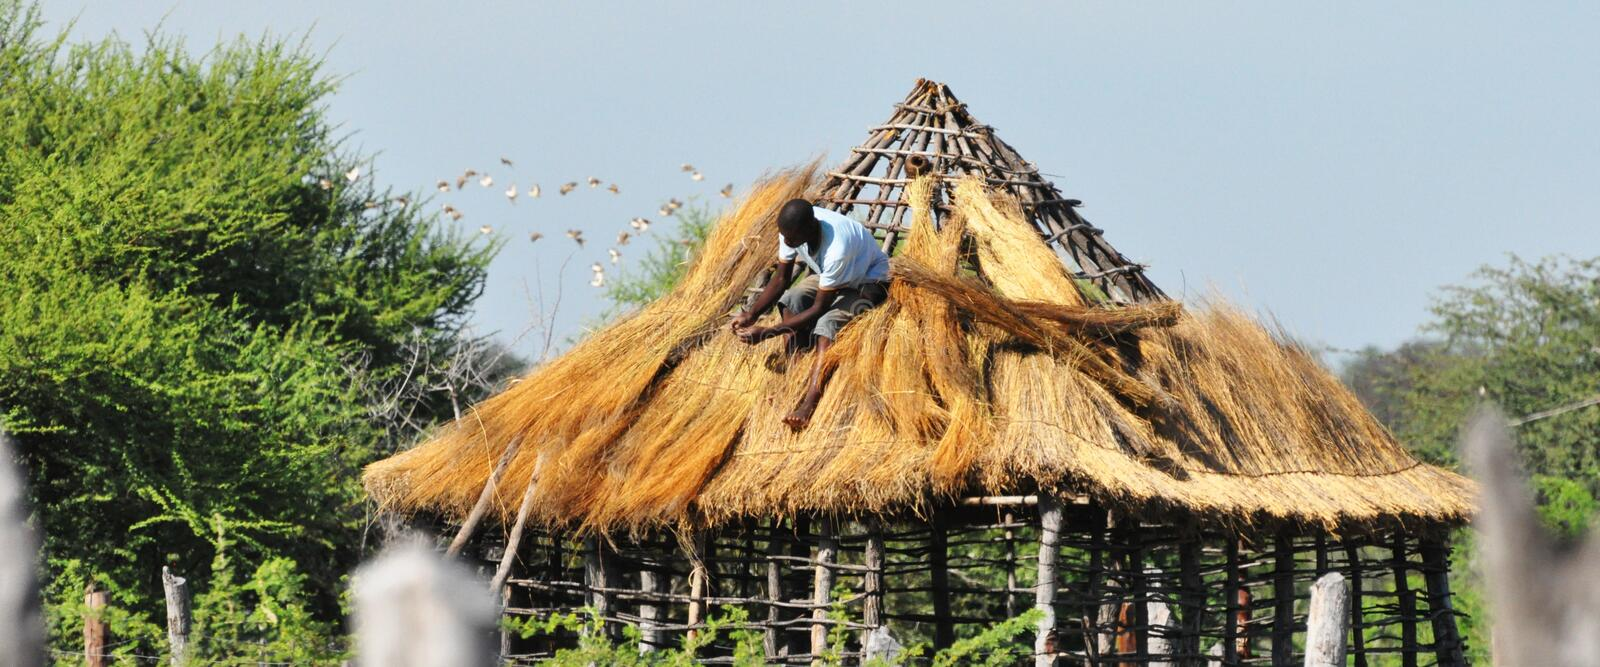 Thatching a roof in rural Botswana, Africa stock images